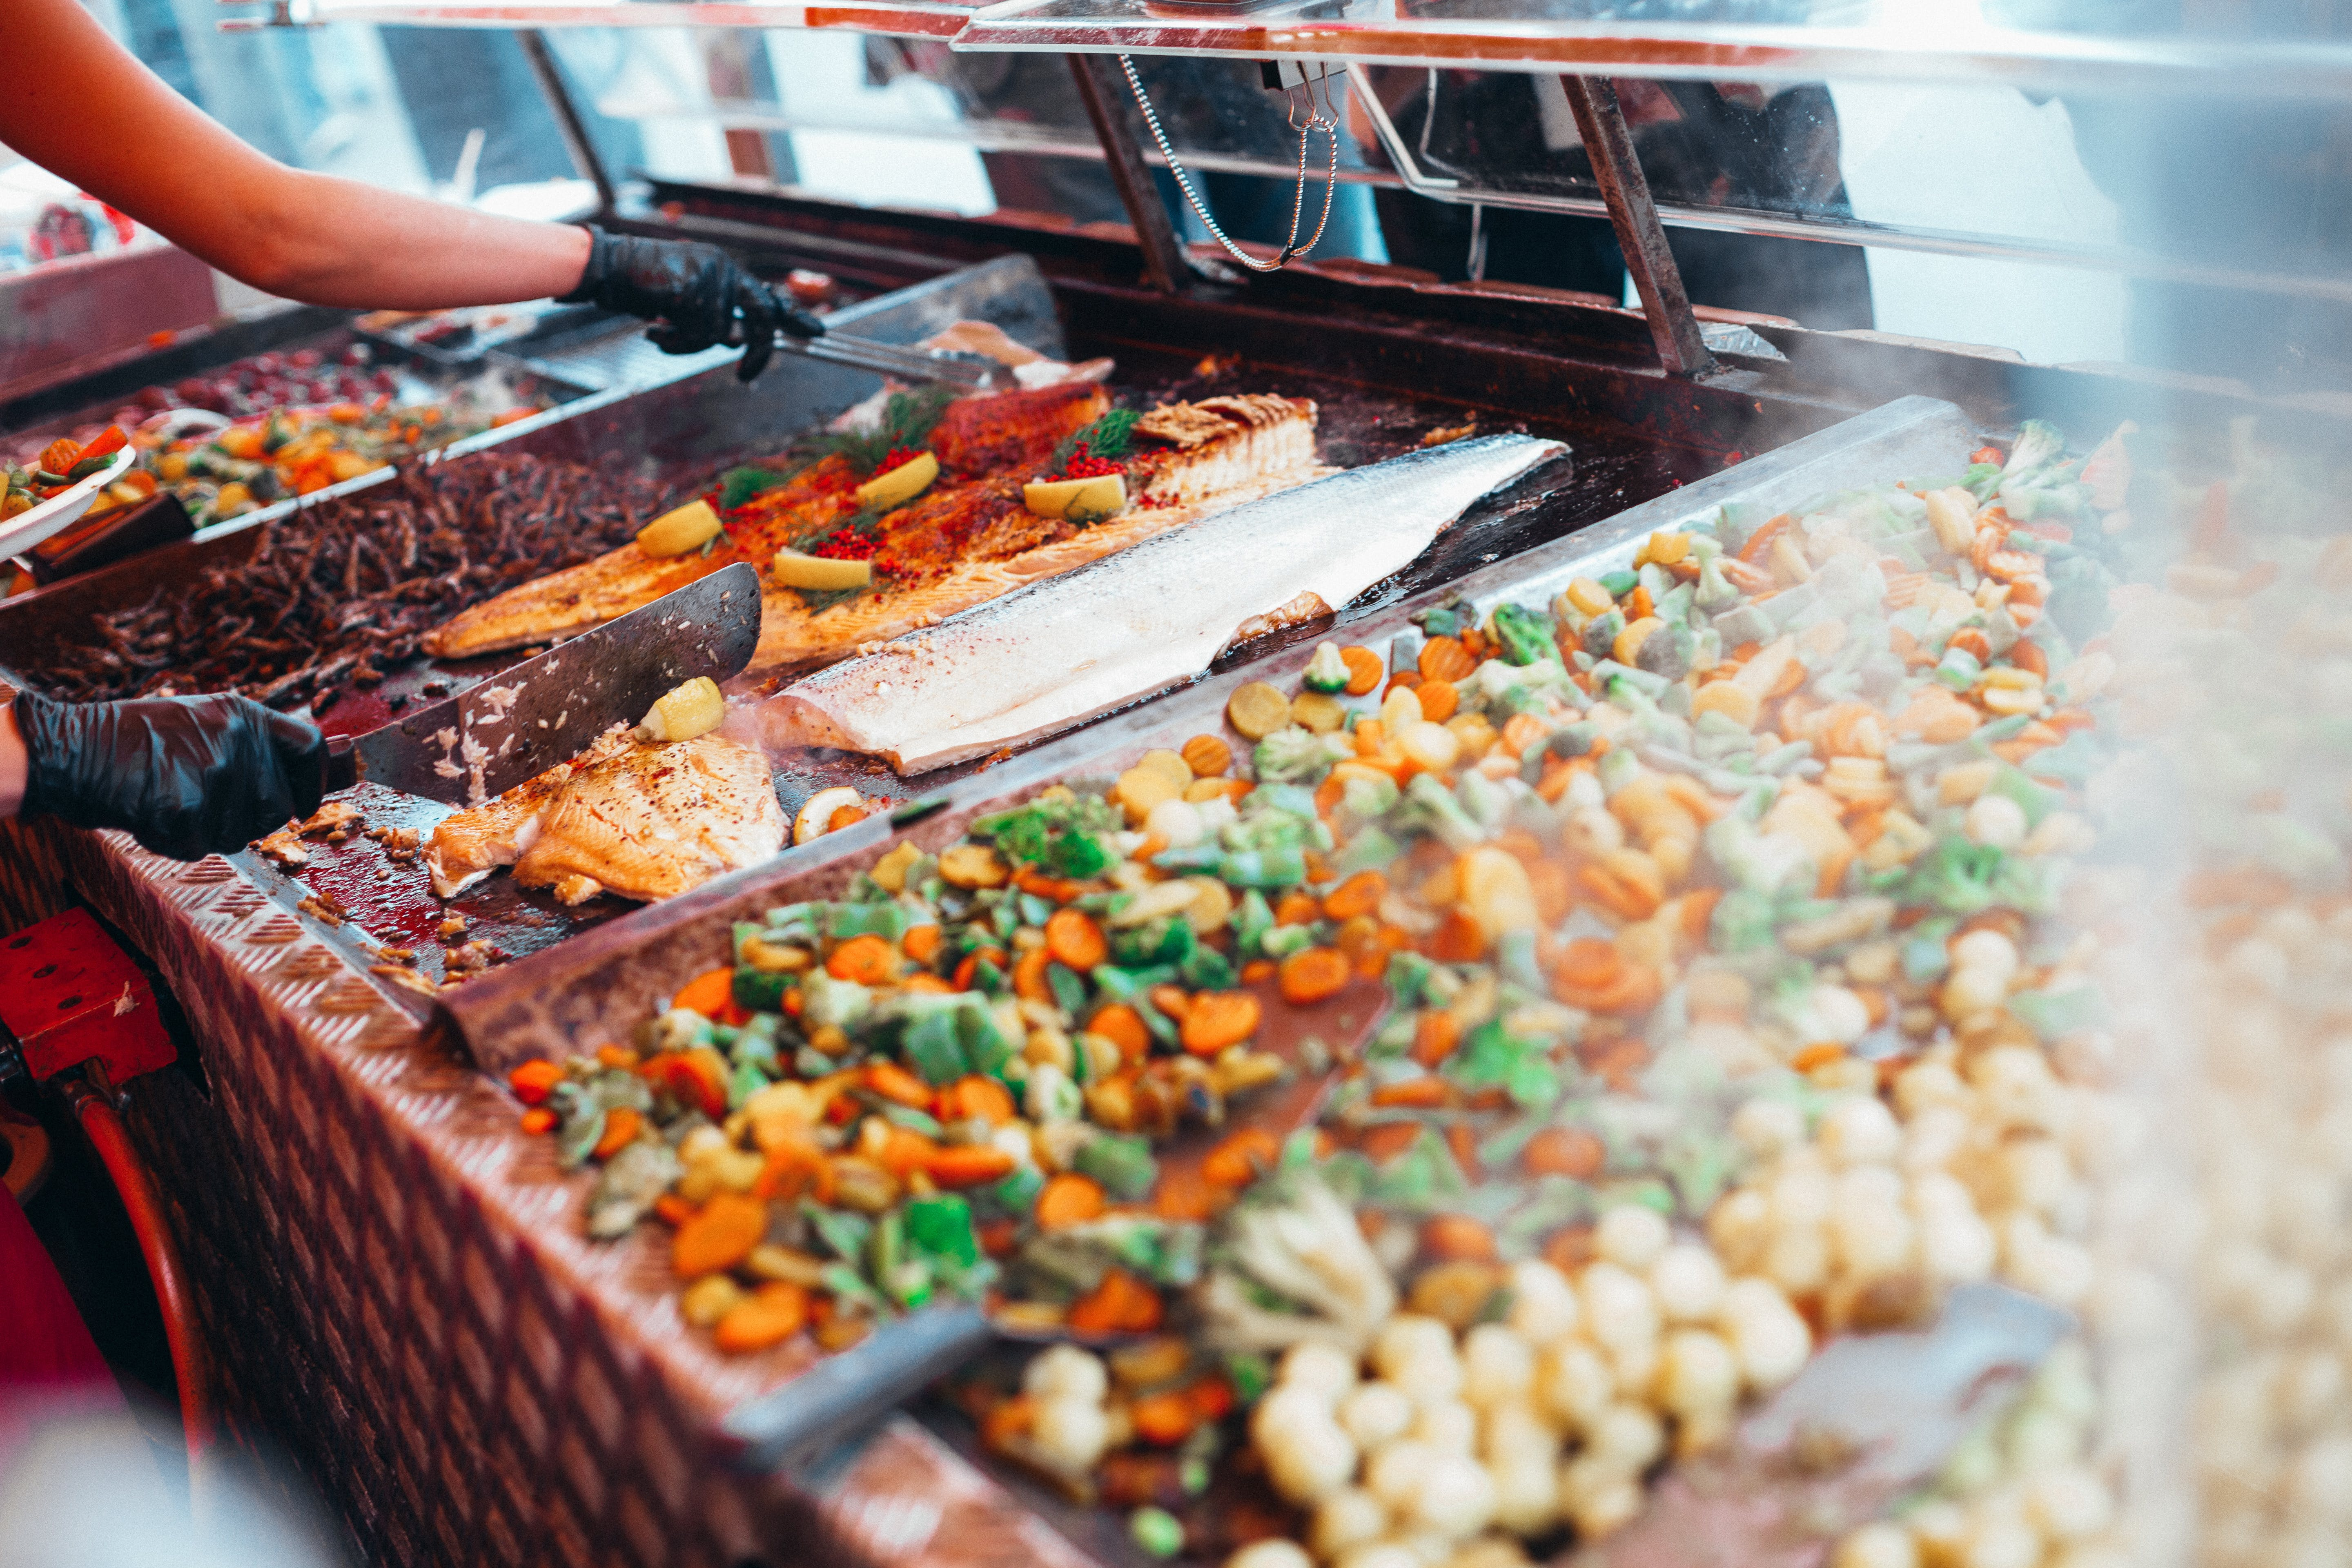 Food in Bain Marie Counter in Focus Photography